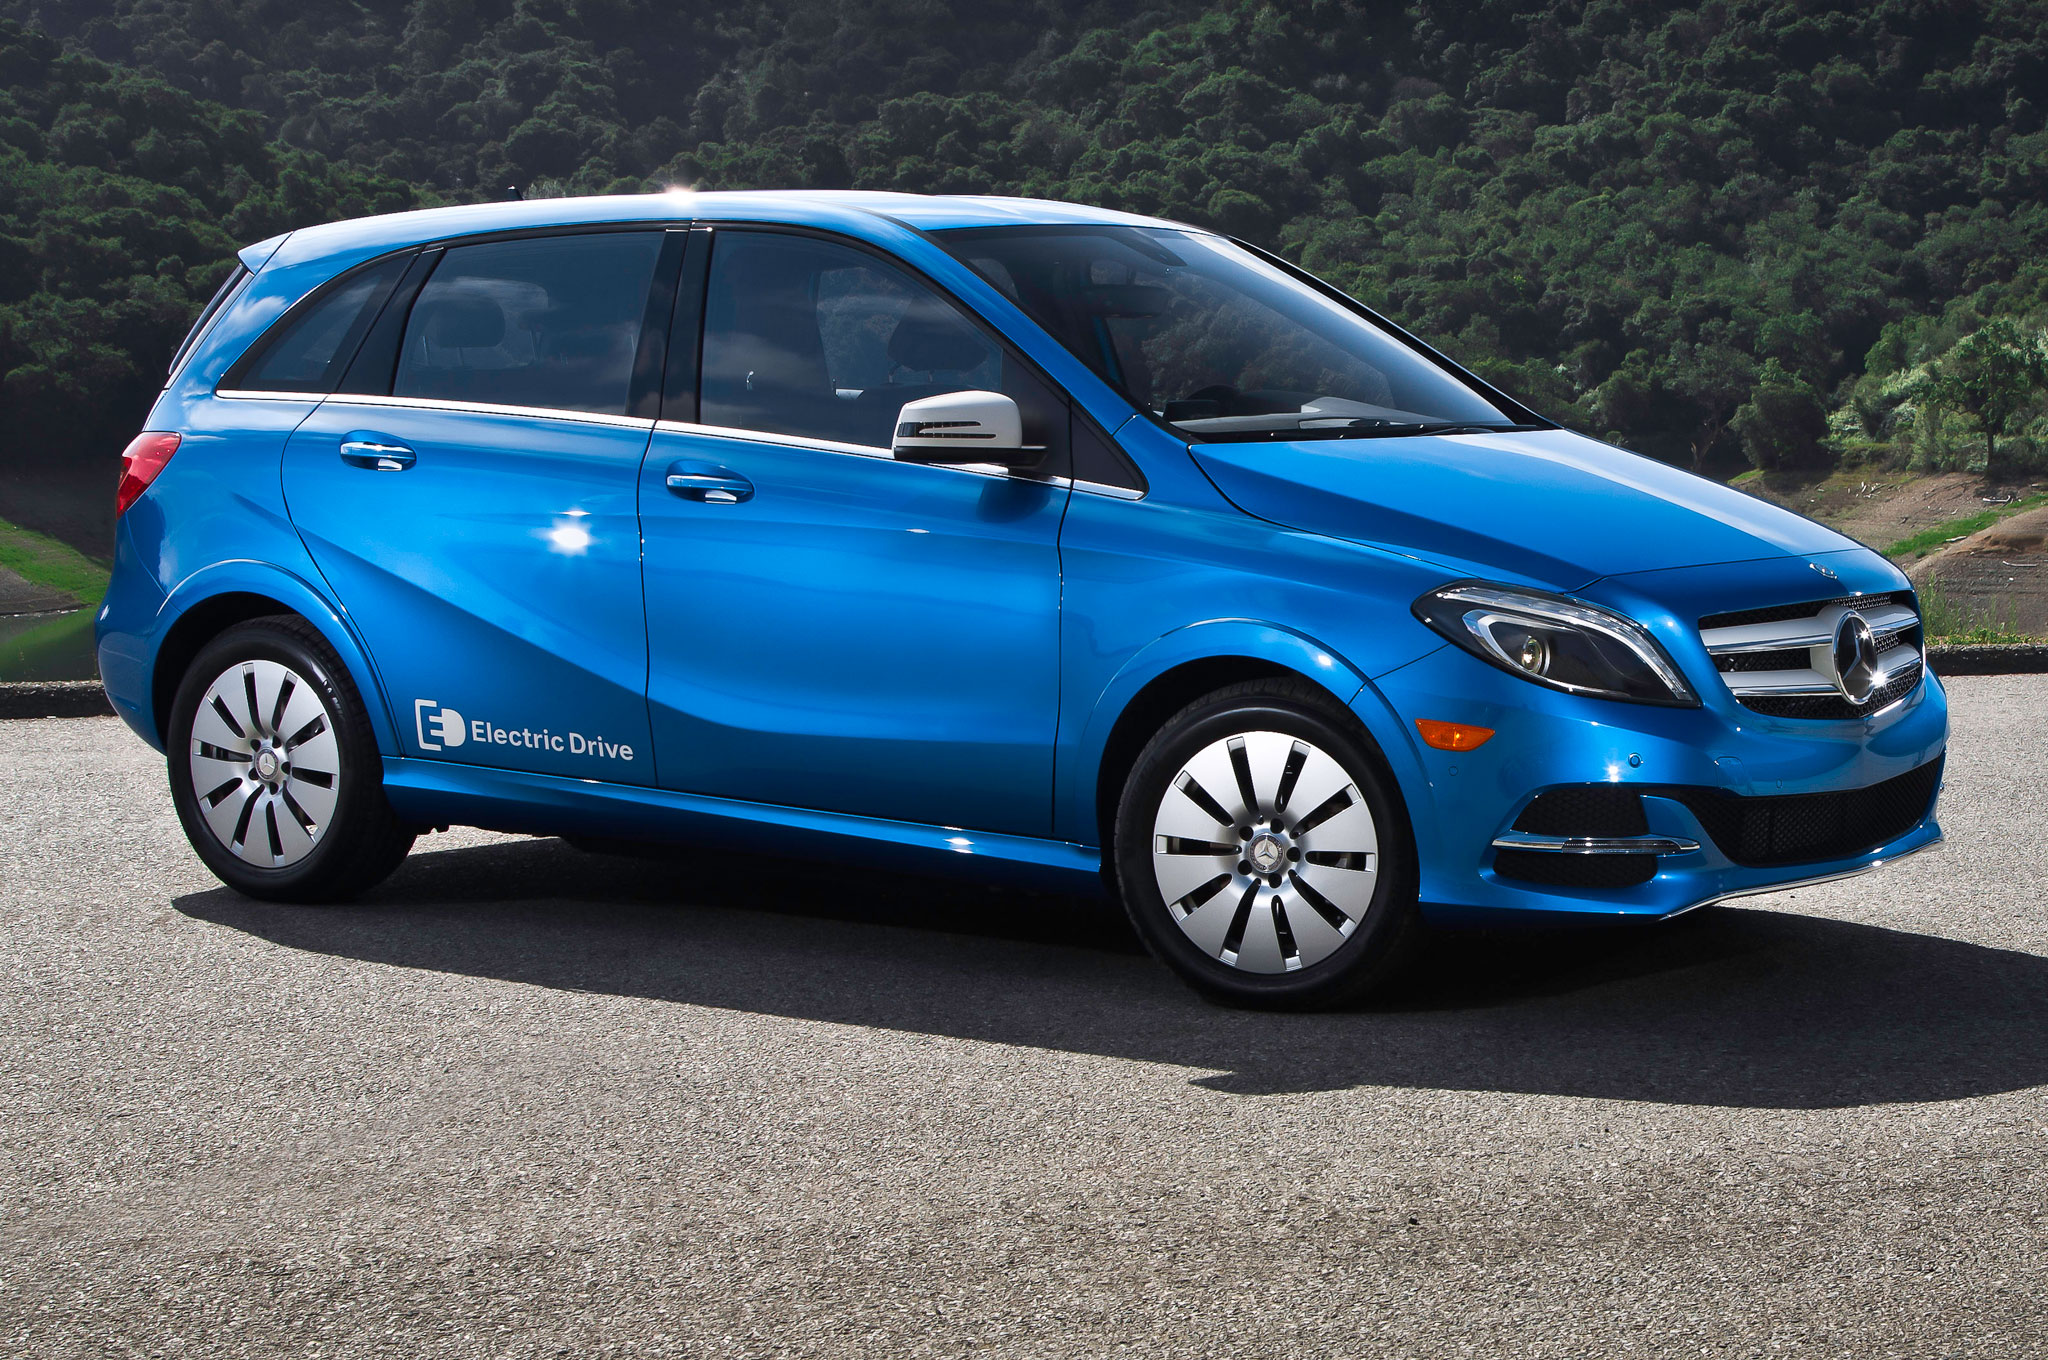 2014 Mercedes Benz B Class Electric Drive Front Side View Posing1